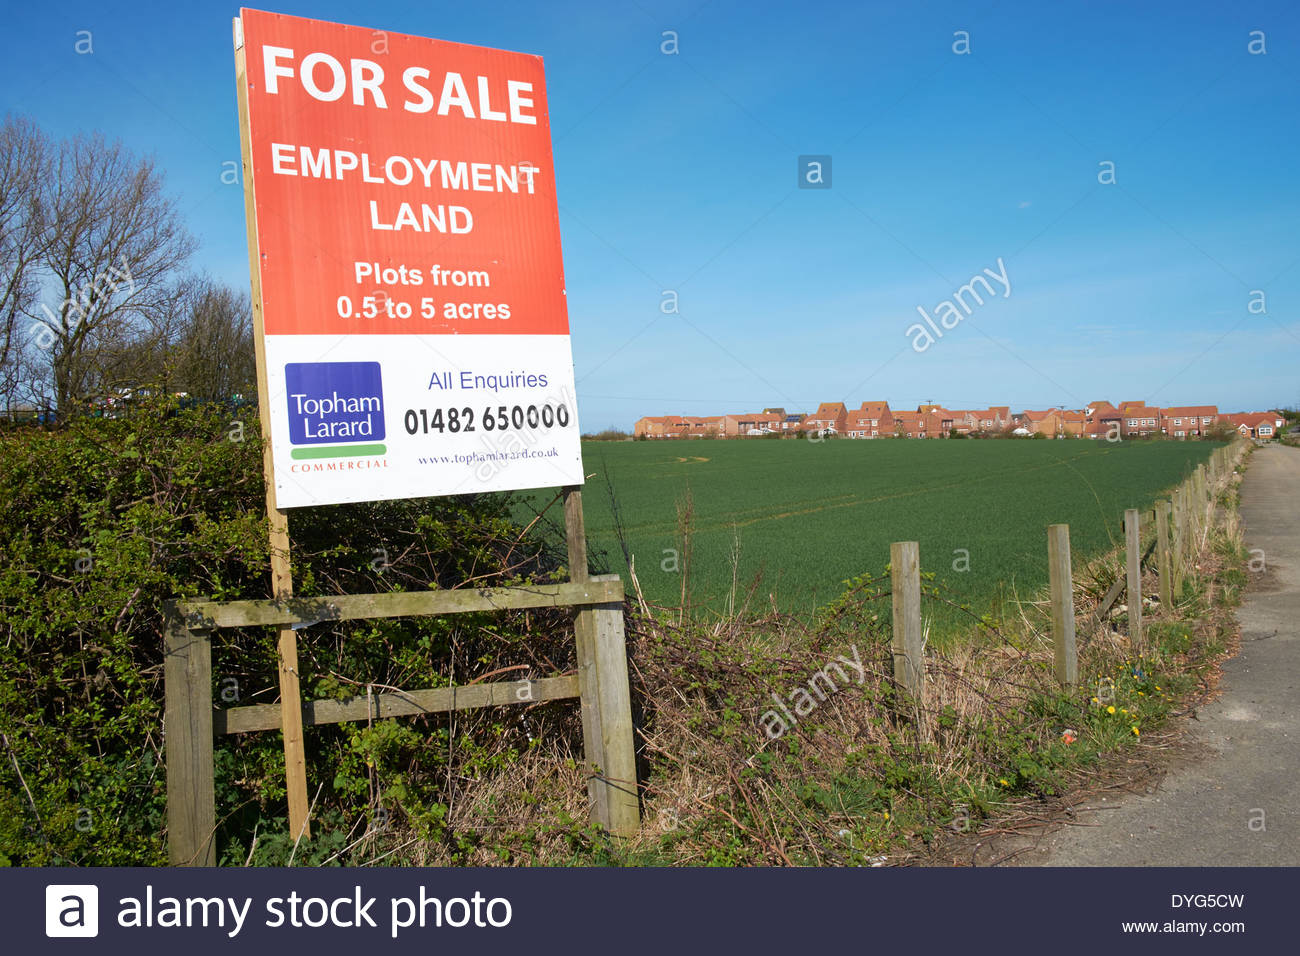 Employment land for sale sign hornseaeast yorkshire land for development to provide employment